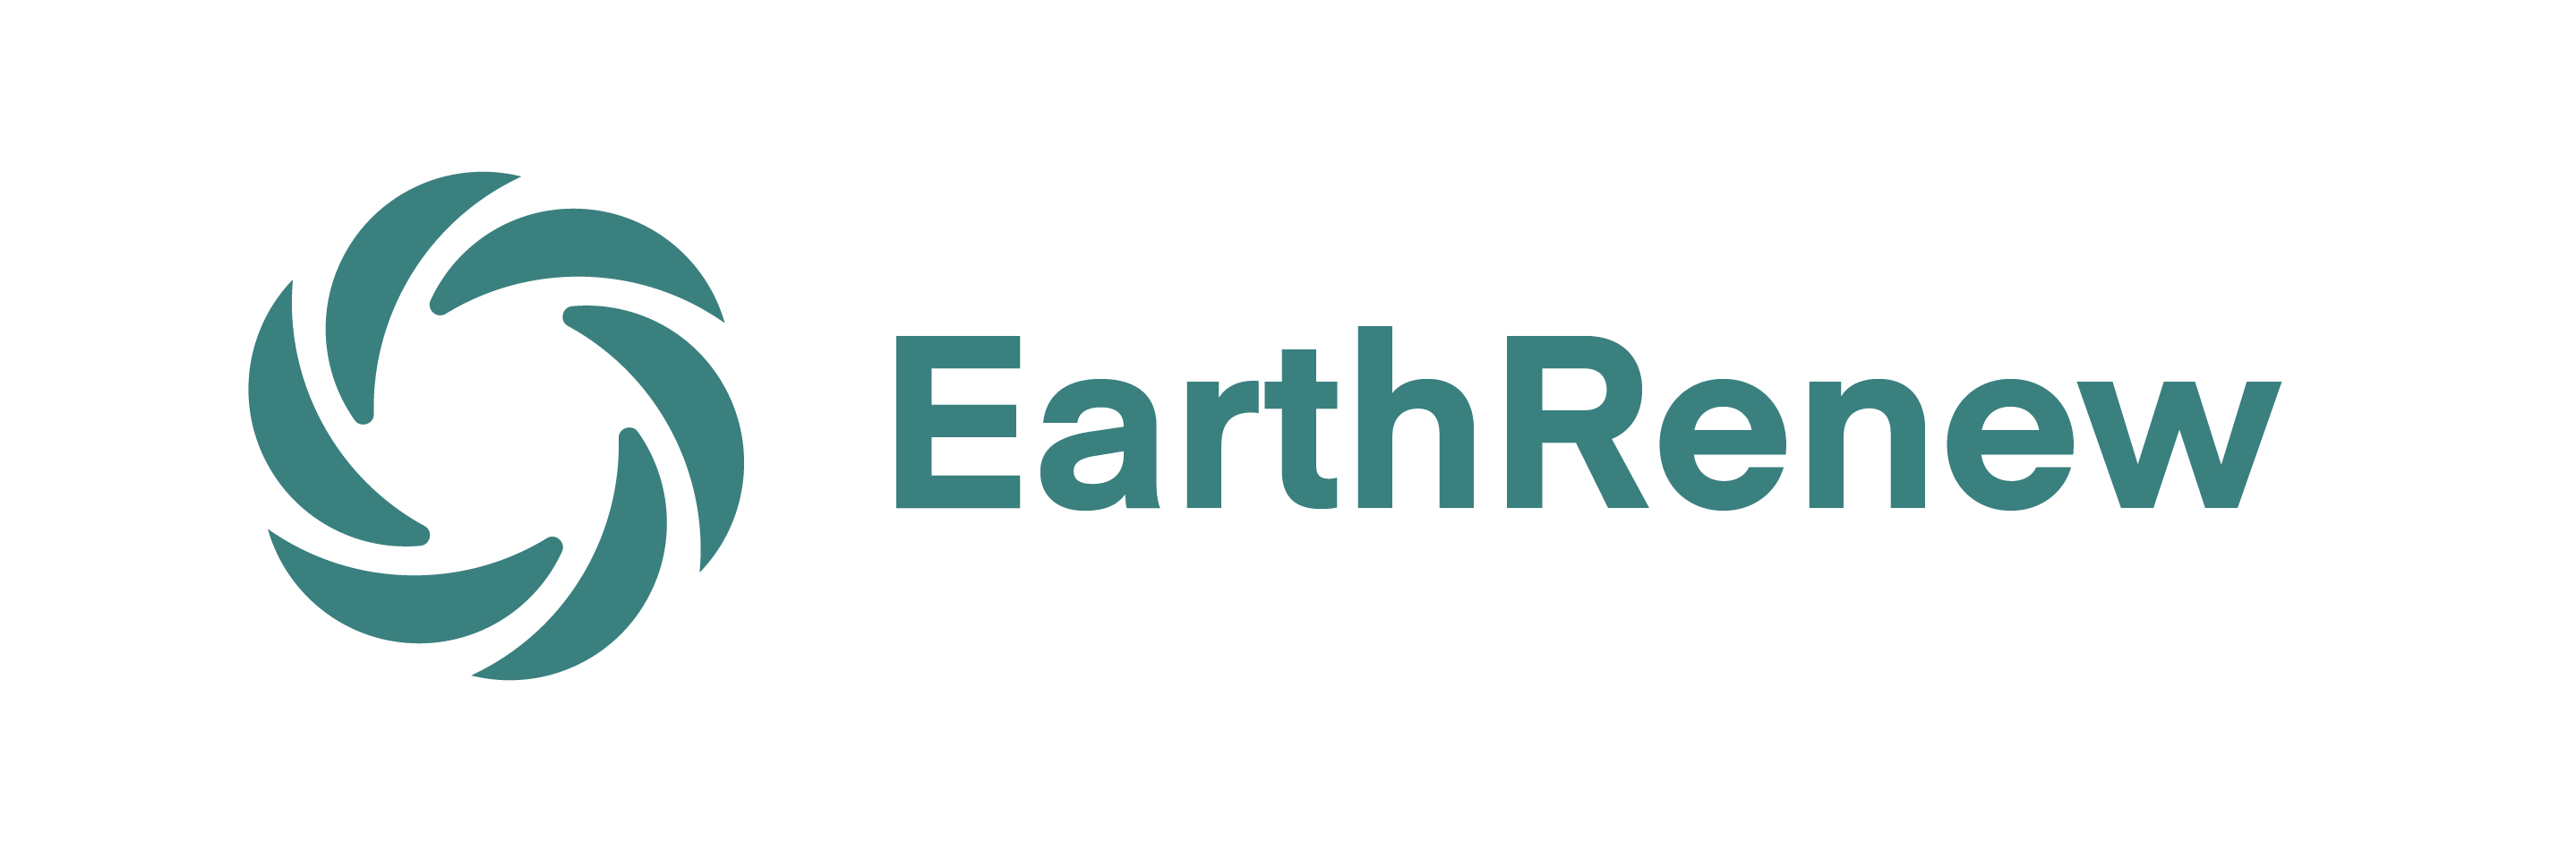 REPEAT - Engineering Update for EarthRenew Strathmore Facility; Live Webinar on Tuesday, November 17th